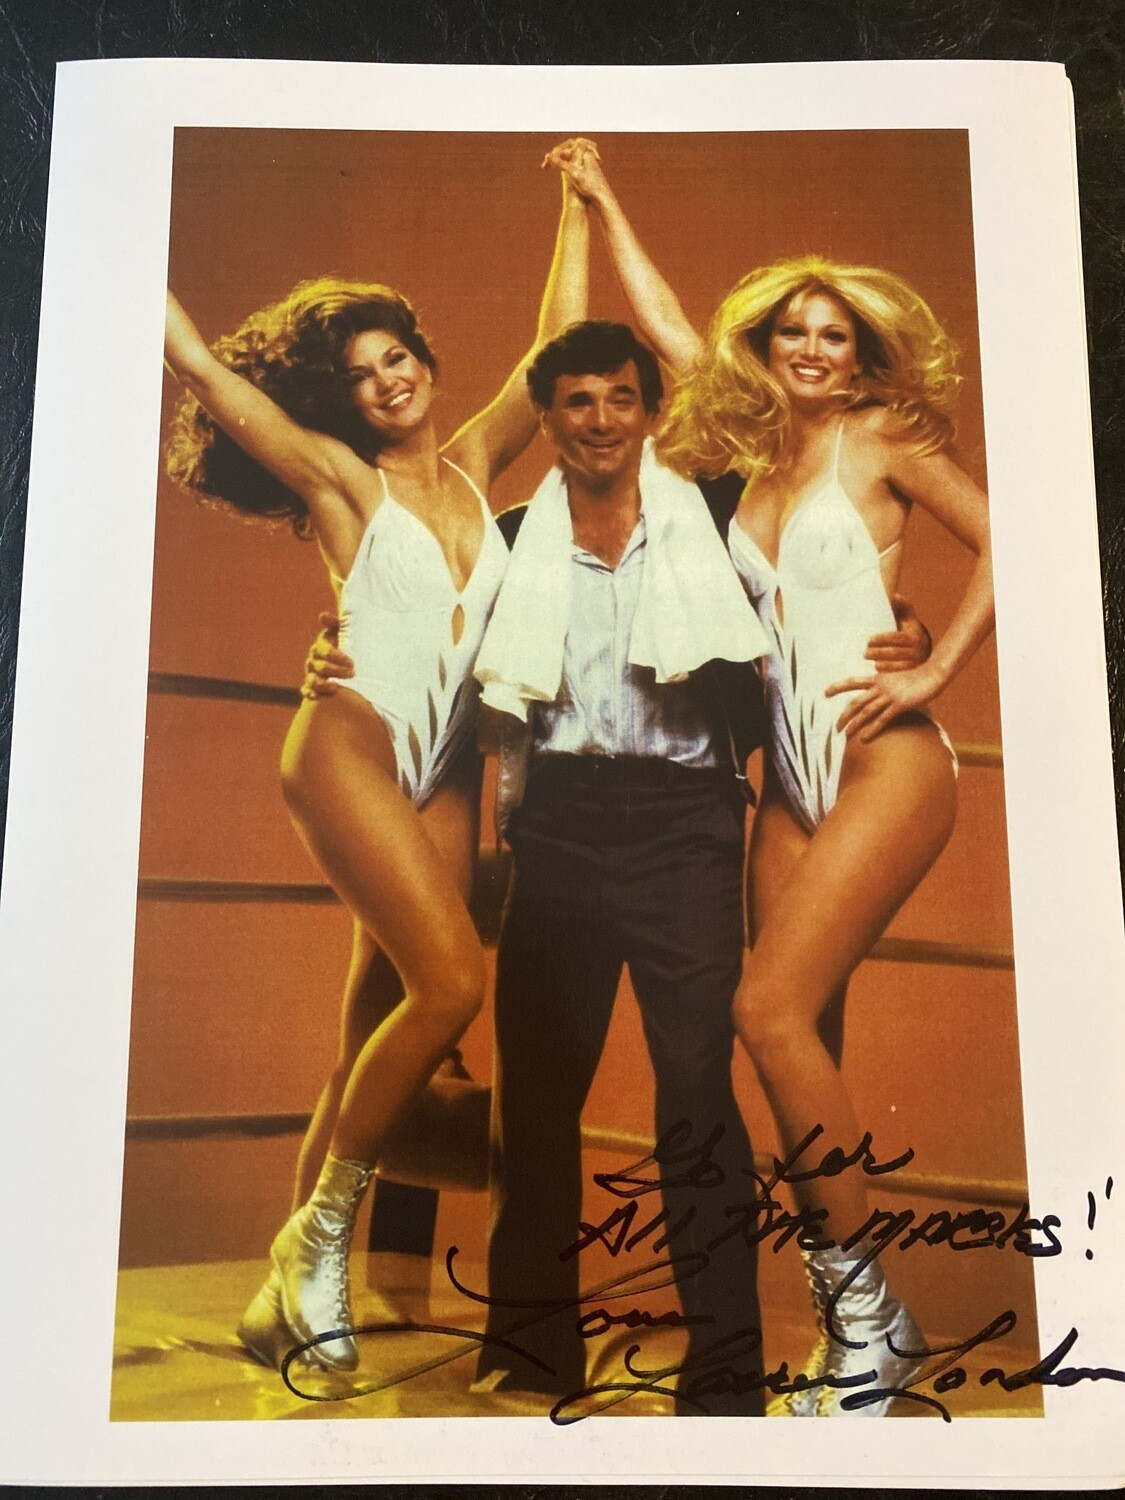 Rare (ALL THE MARBLES) Promo Photo Autographed By me (Laurene Landon)